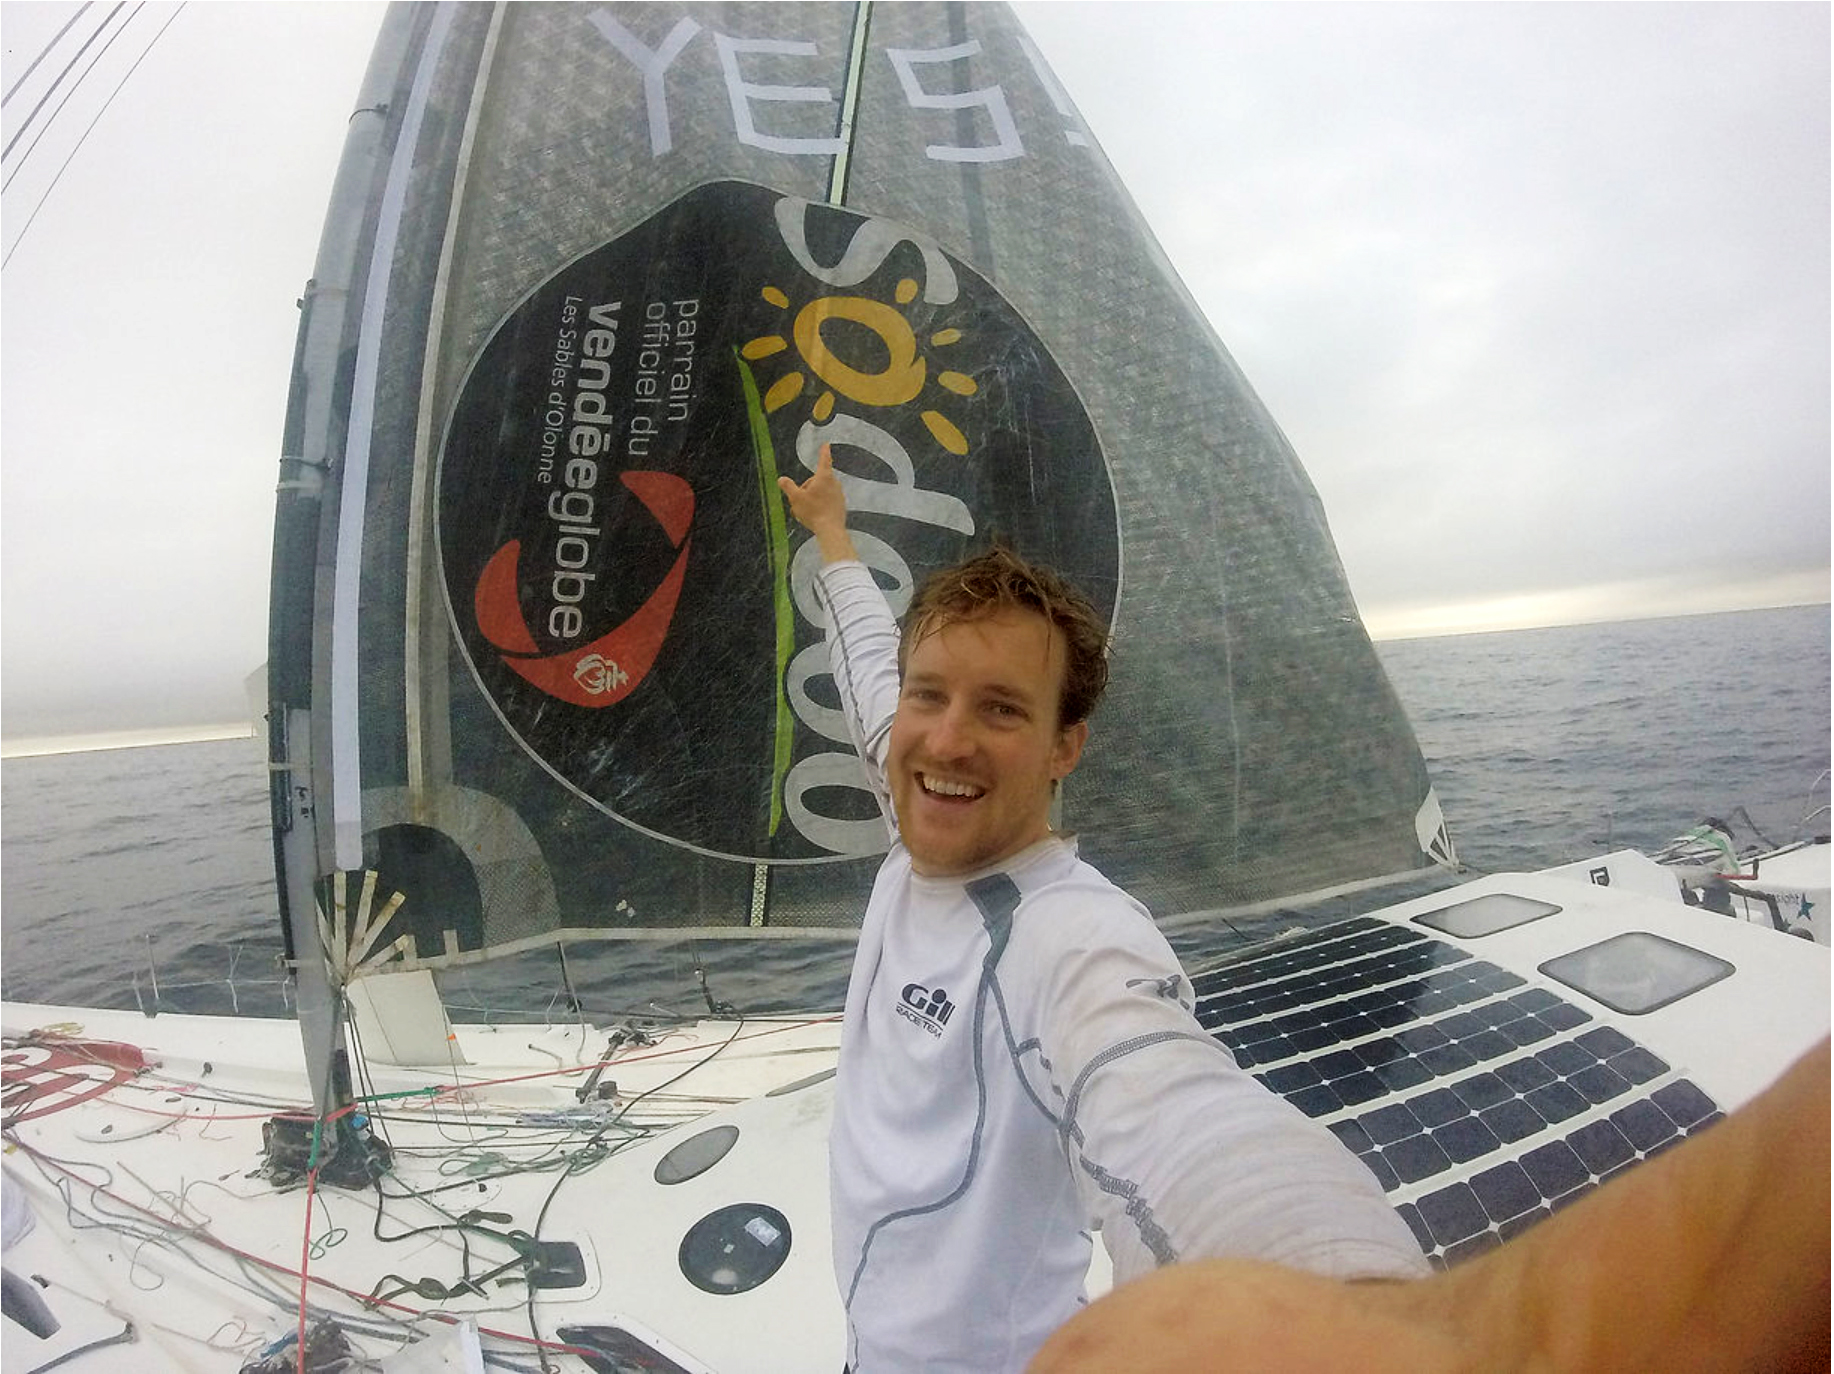 Conrad Colmam's jury rig is up and moving his boat toward the finish of the Vendee Globe.